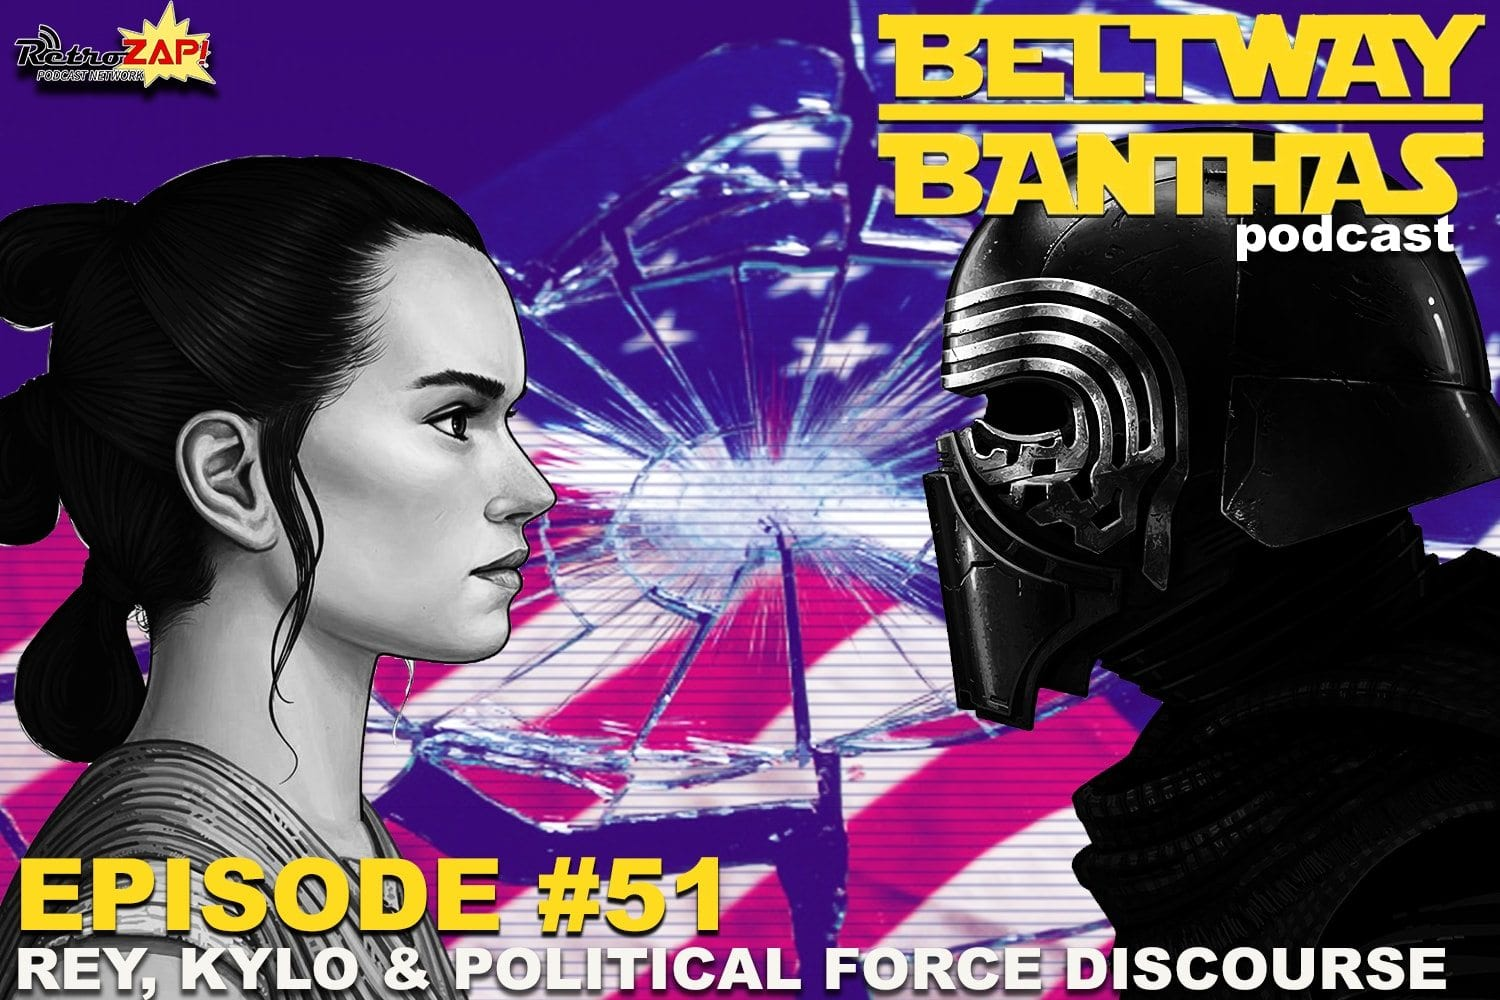 Beltway Banthas #51: Rey, Kylo and Political Force Discourse